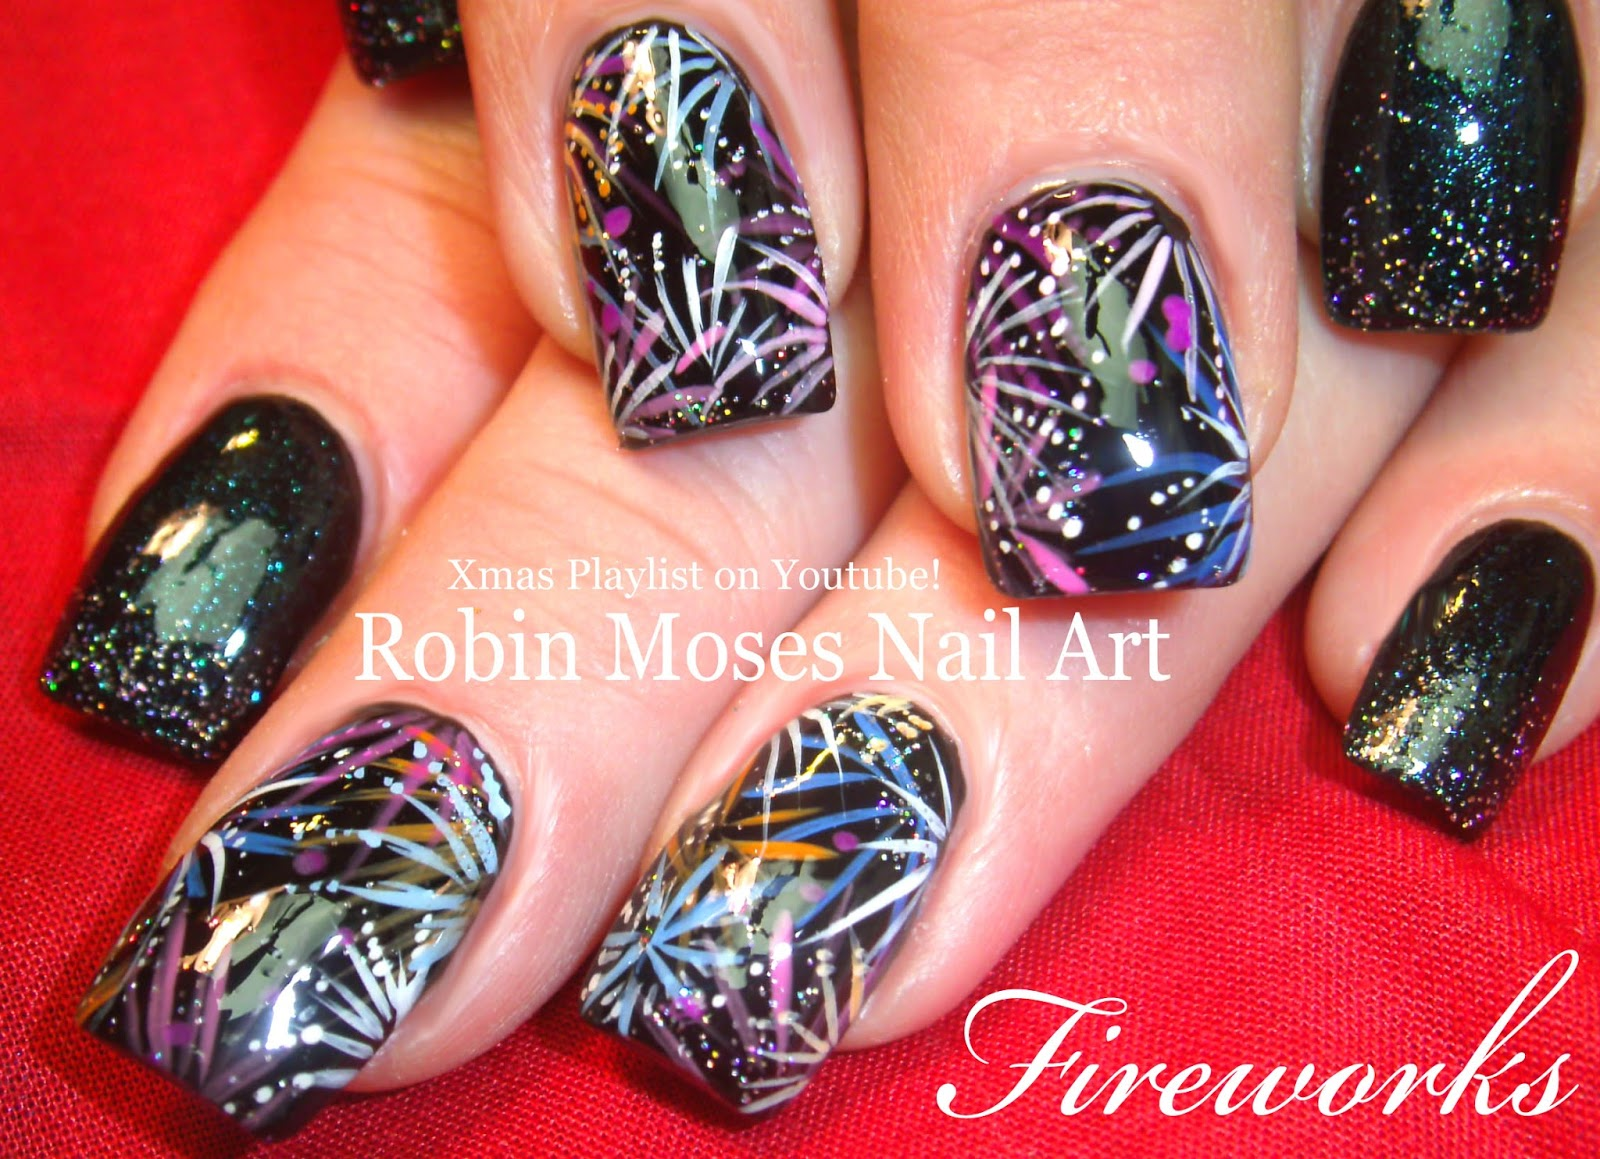 Robin moses nail art 2015 firework nail art for new years eve fun and cute to do will look so awesome with anythng you wear and prinsesfo Images